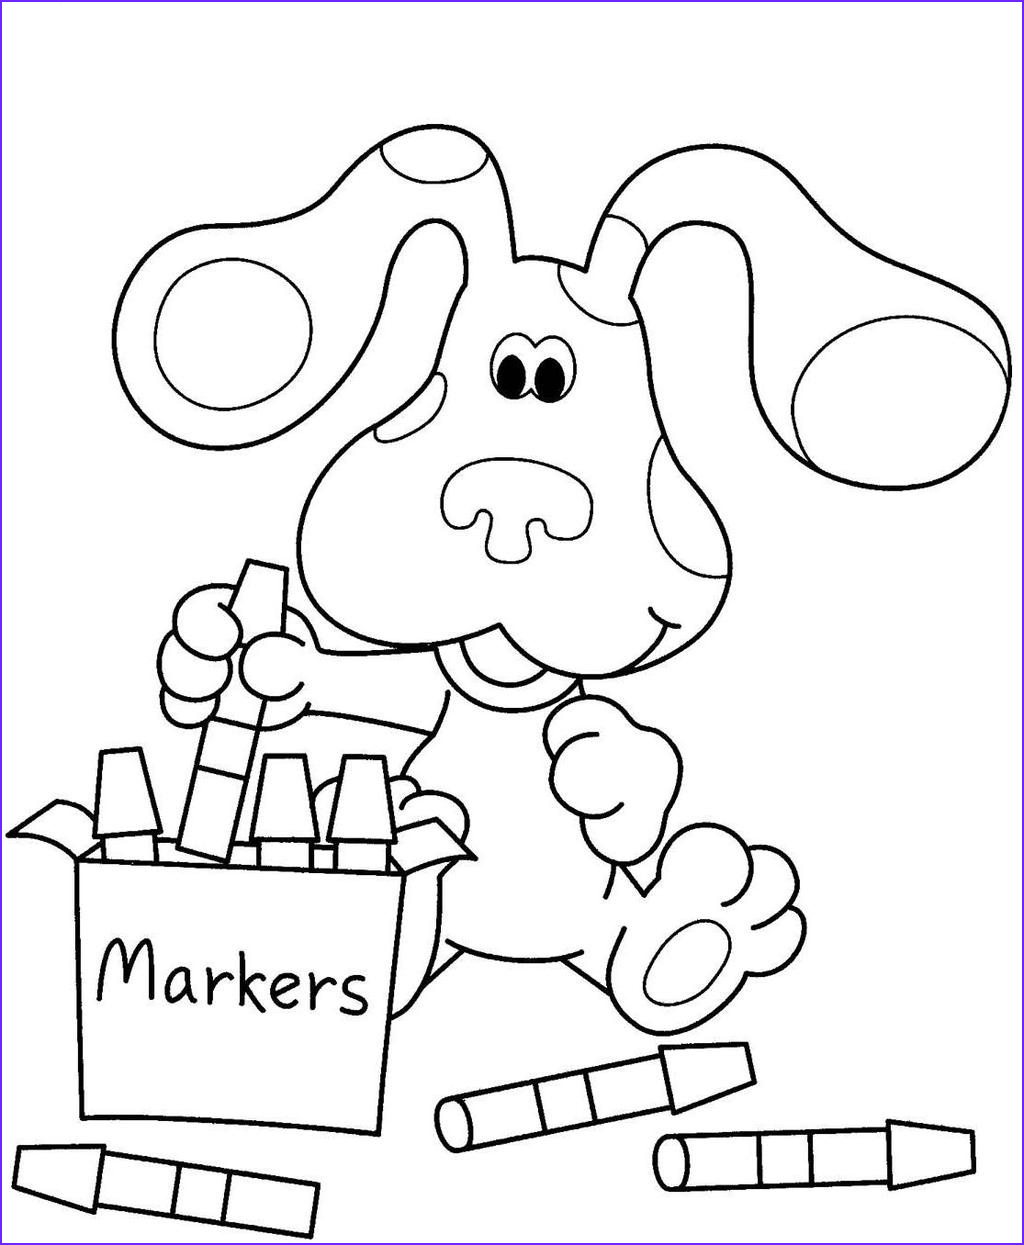 nickelodeon coloring pages nick jr black and white